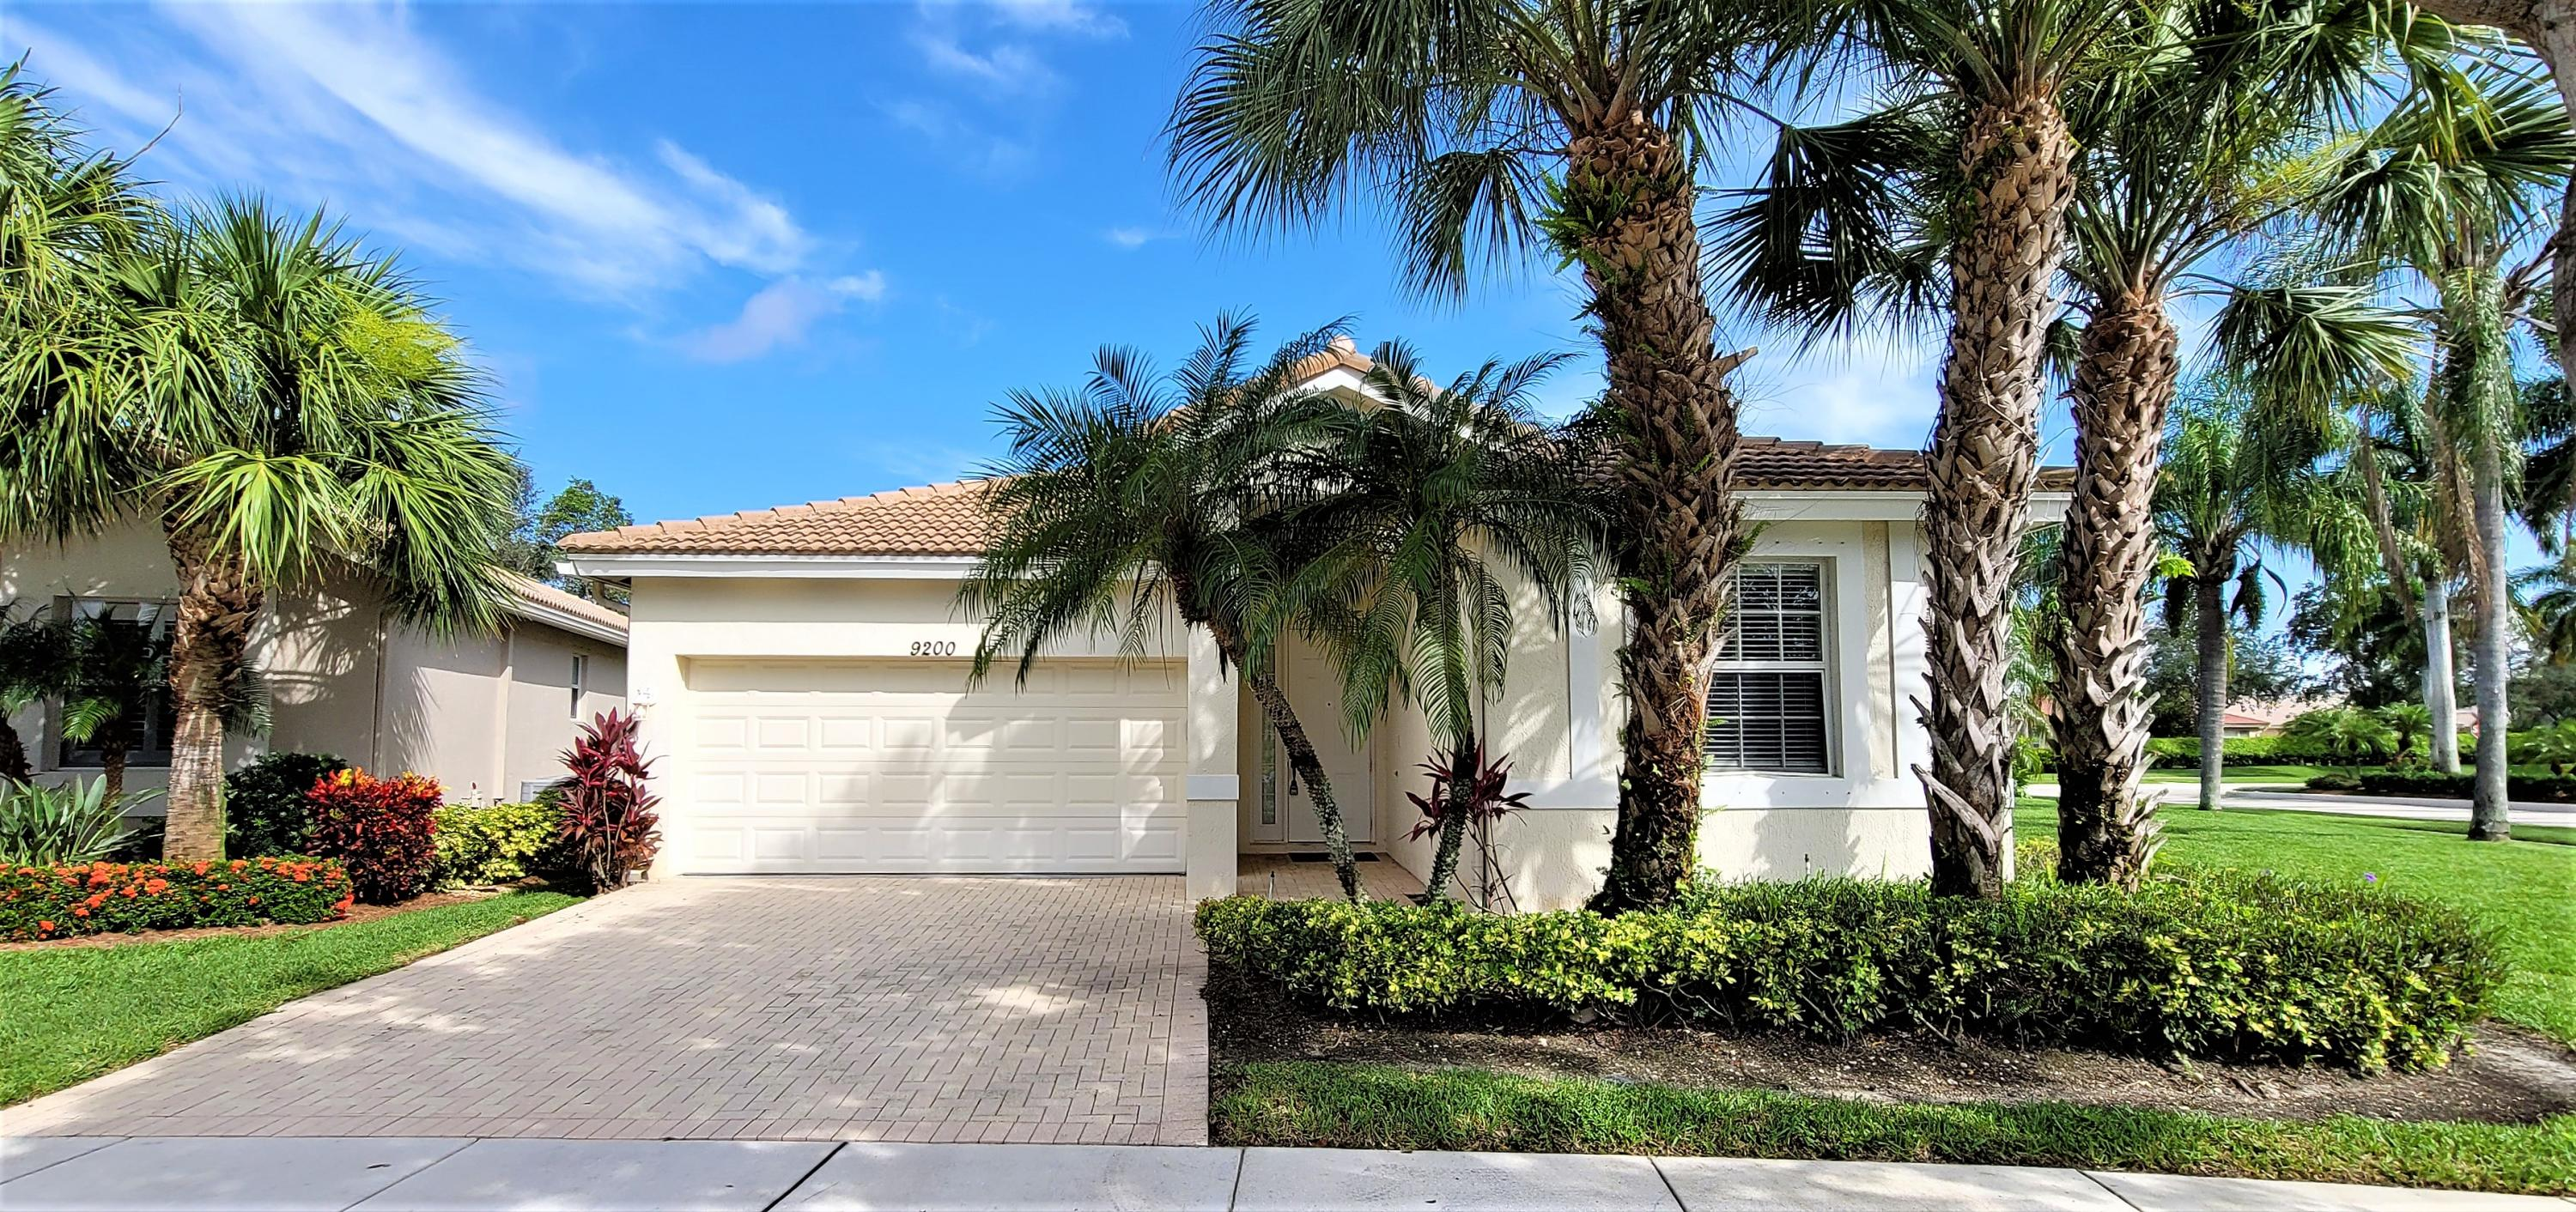 9200  Bay Point Circle  For Sale 10736709, FL